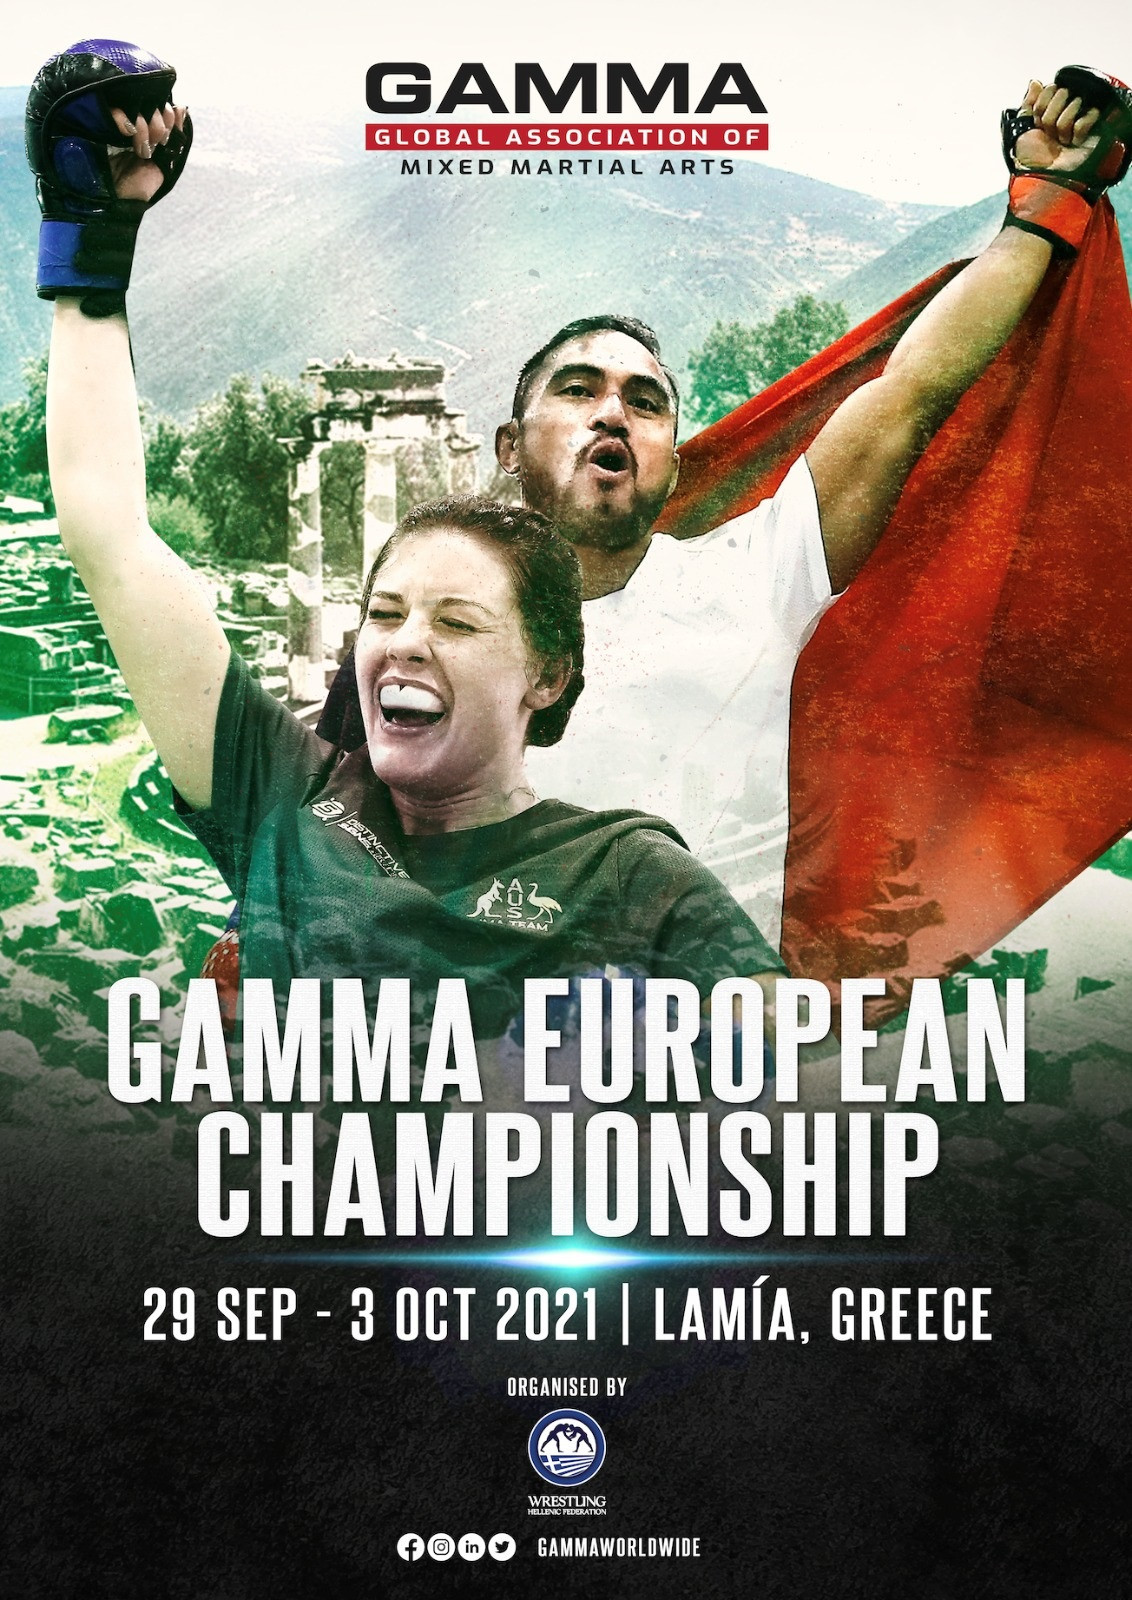 GAMMA relocates European Championship to Greece due to COVID-19 restrictions